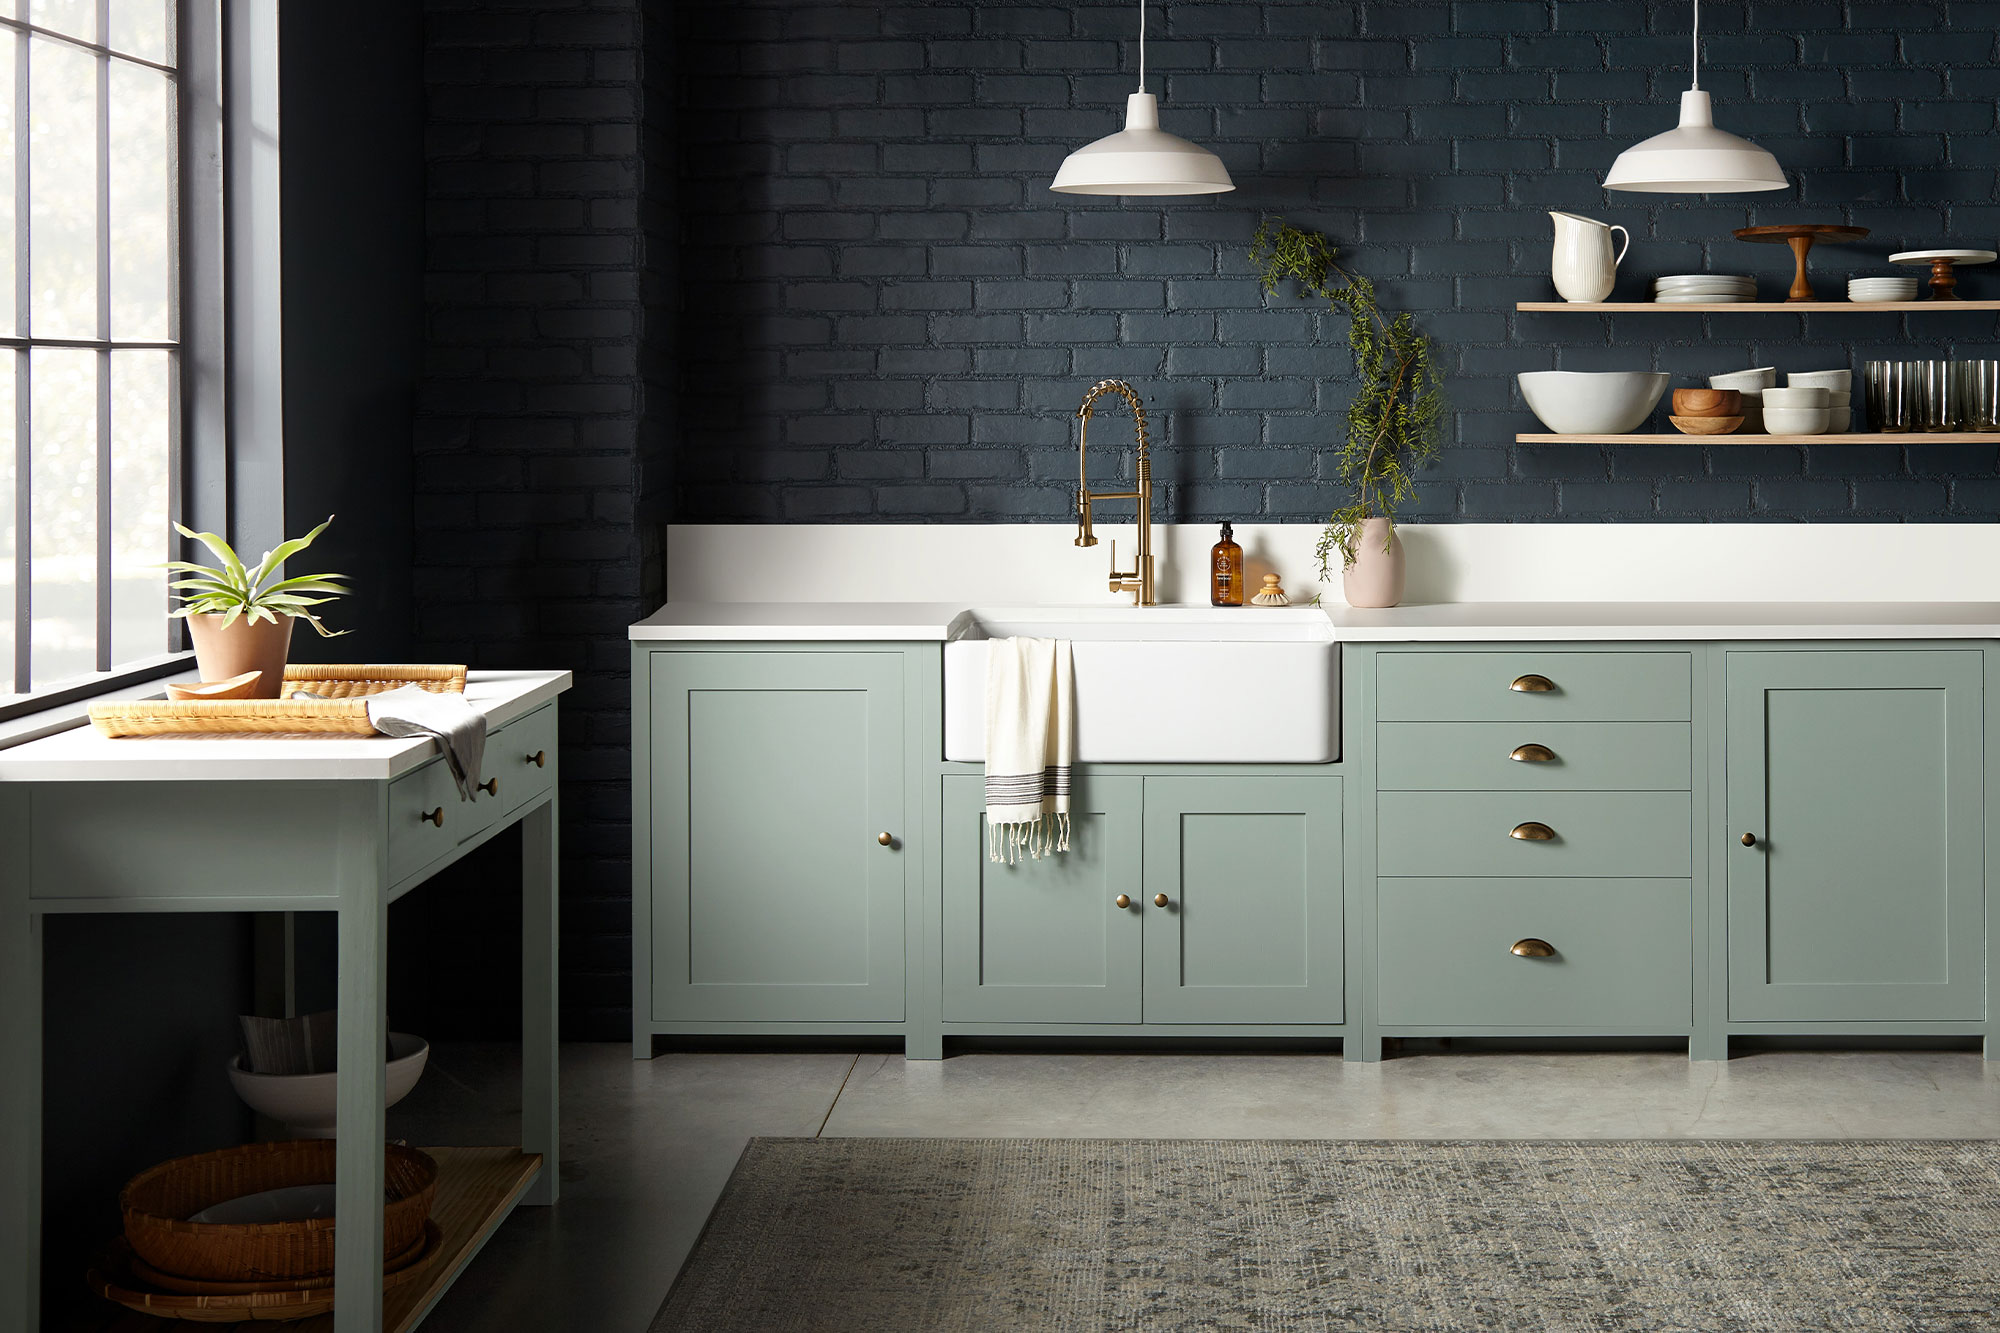 Full Kitchen Shot Featuring Magnolia Home Bold Kitchen Colors Coffee Nook and Clean Slate